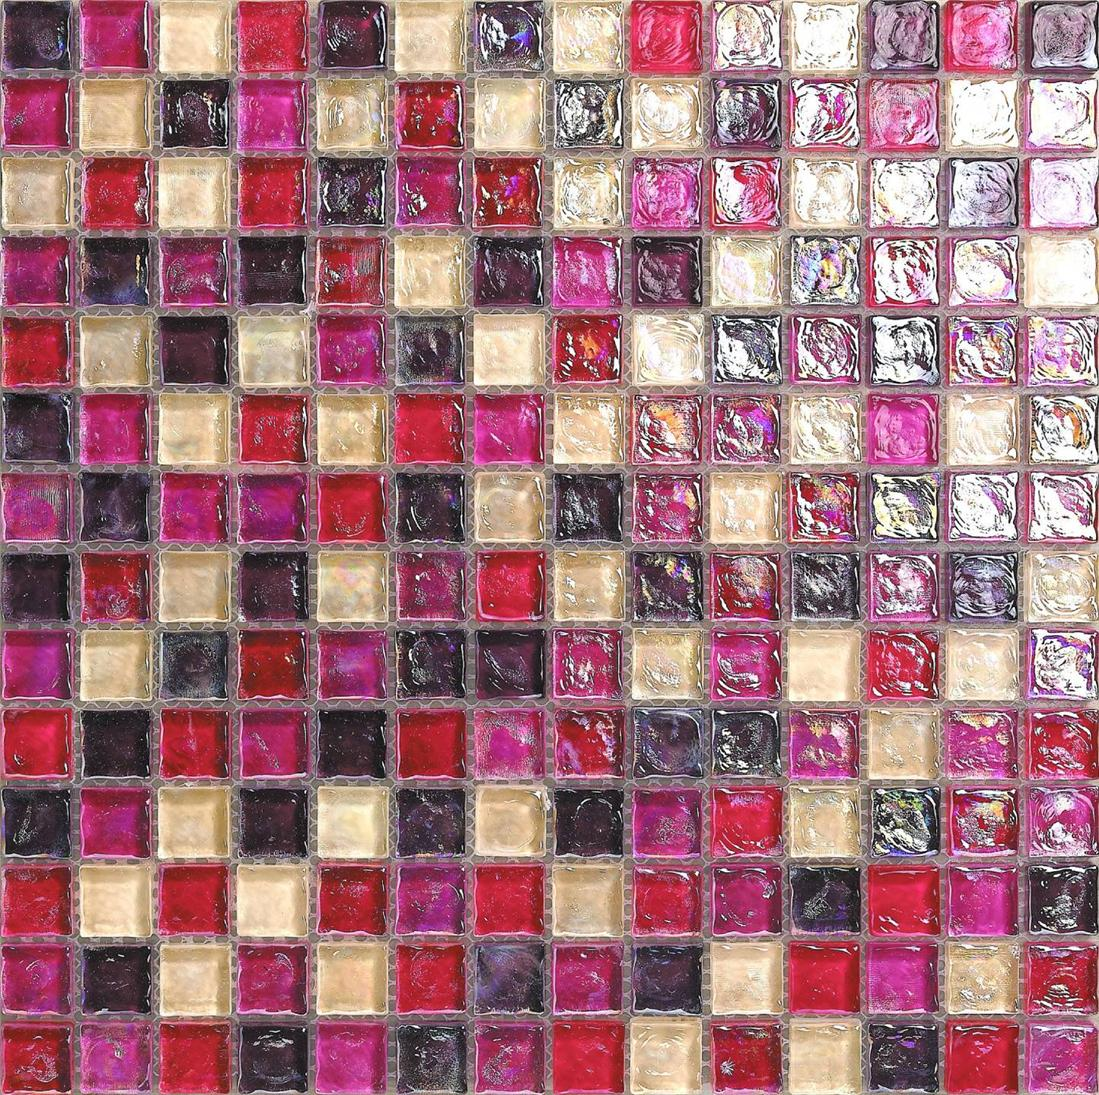 Hammered Pearl Pink Red Glass Mosaic Wall Tiles Bathroom